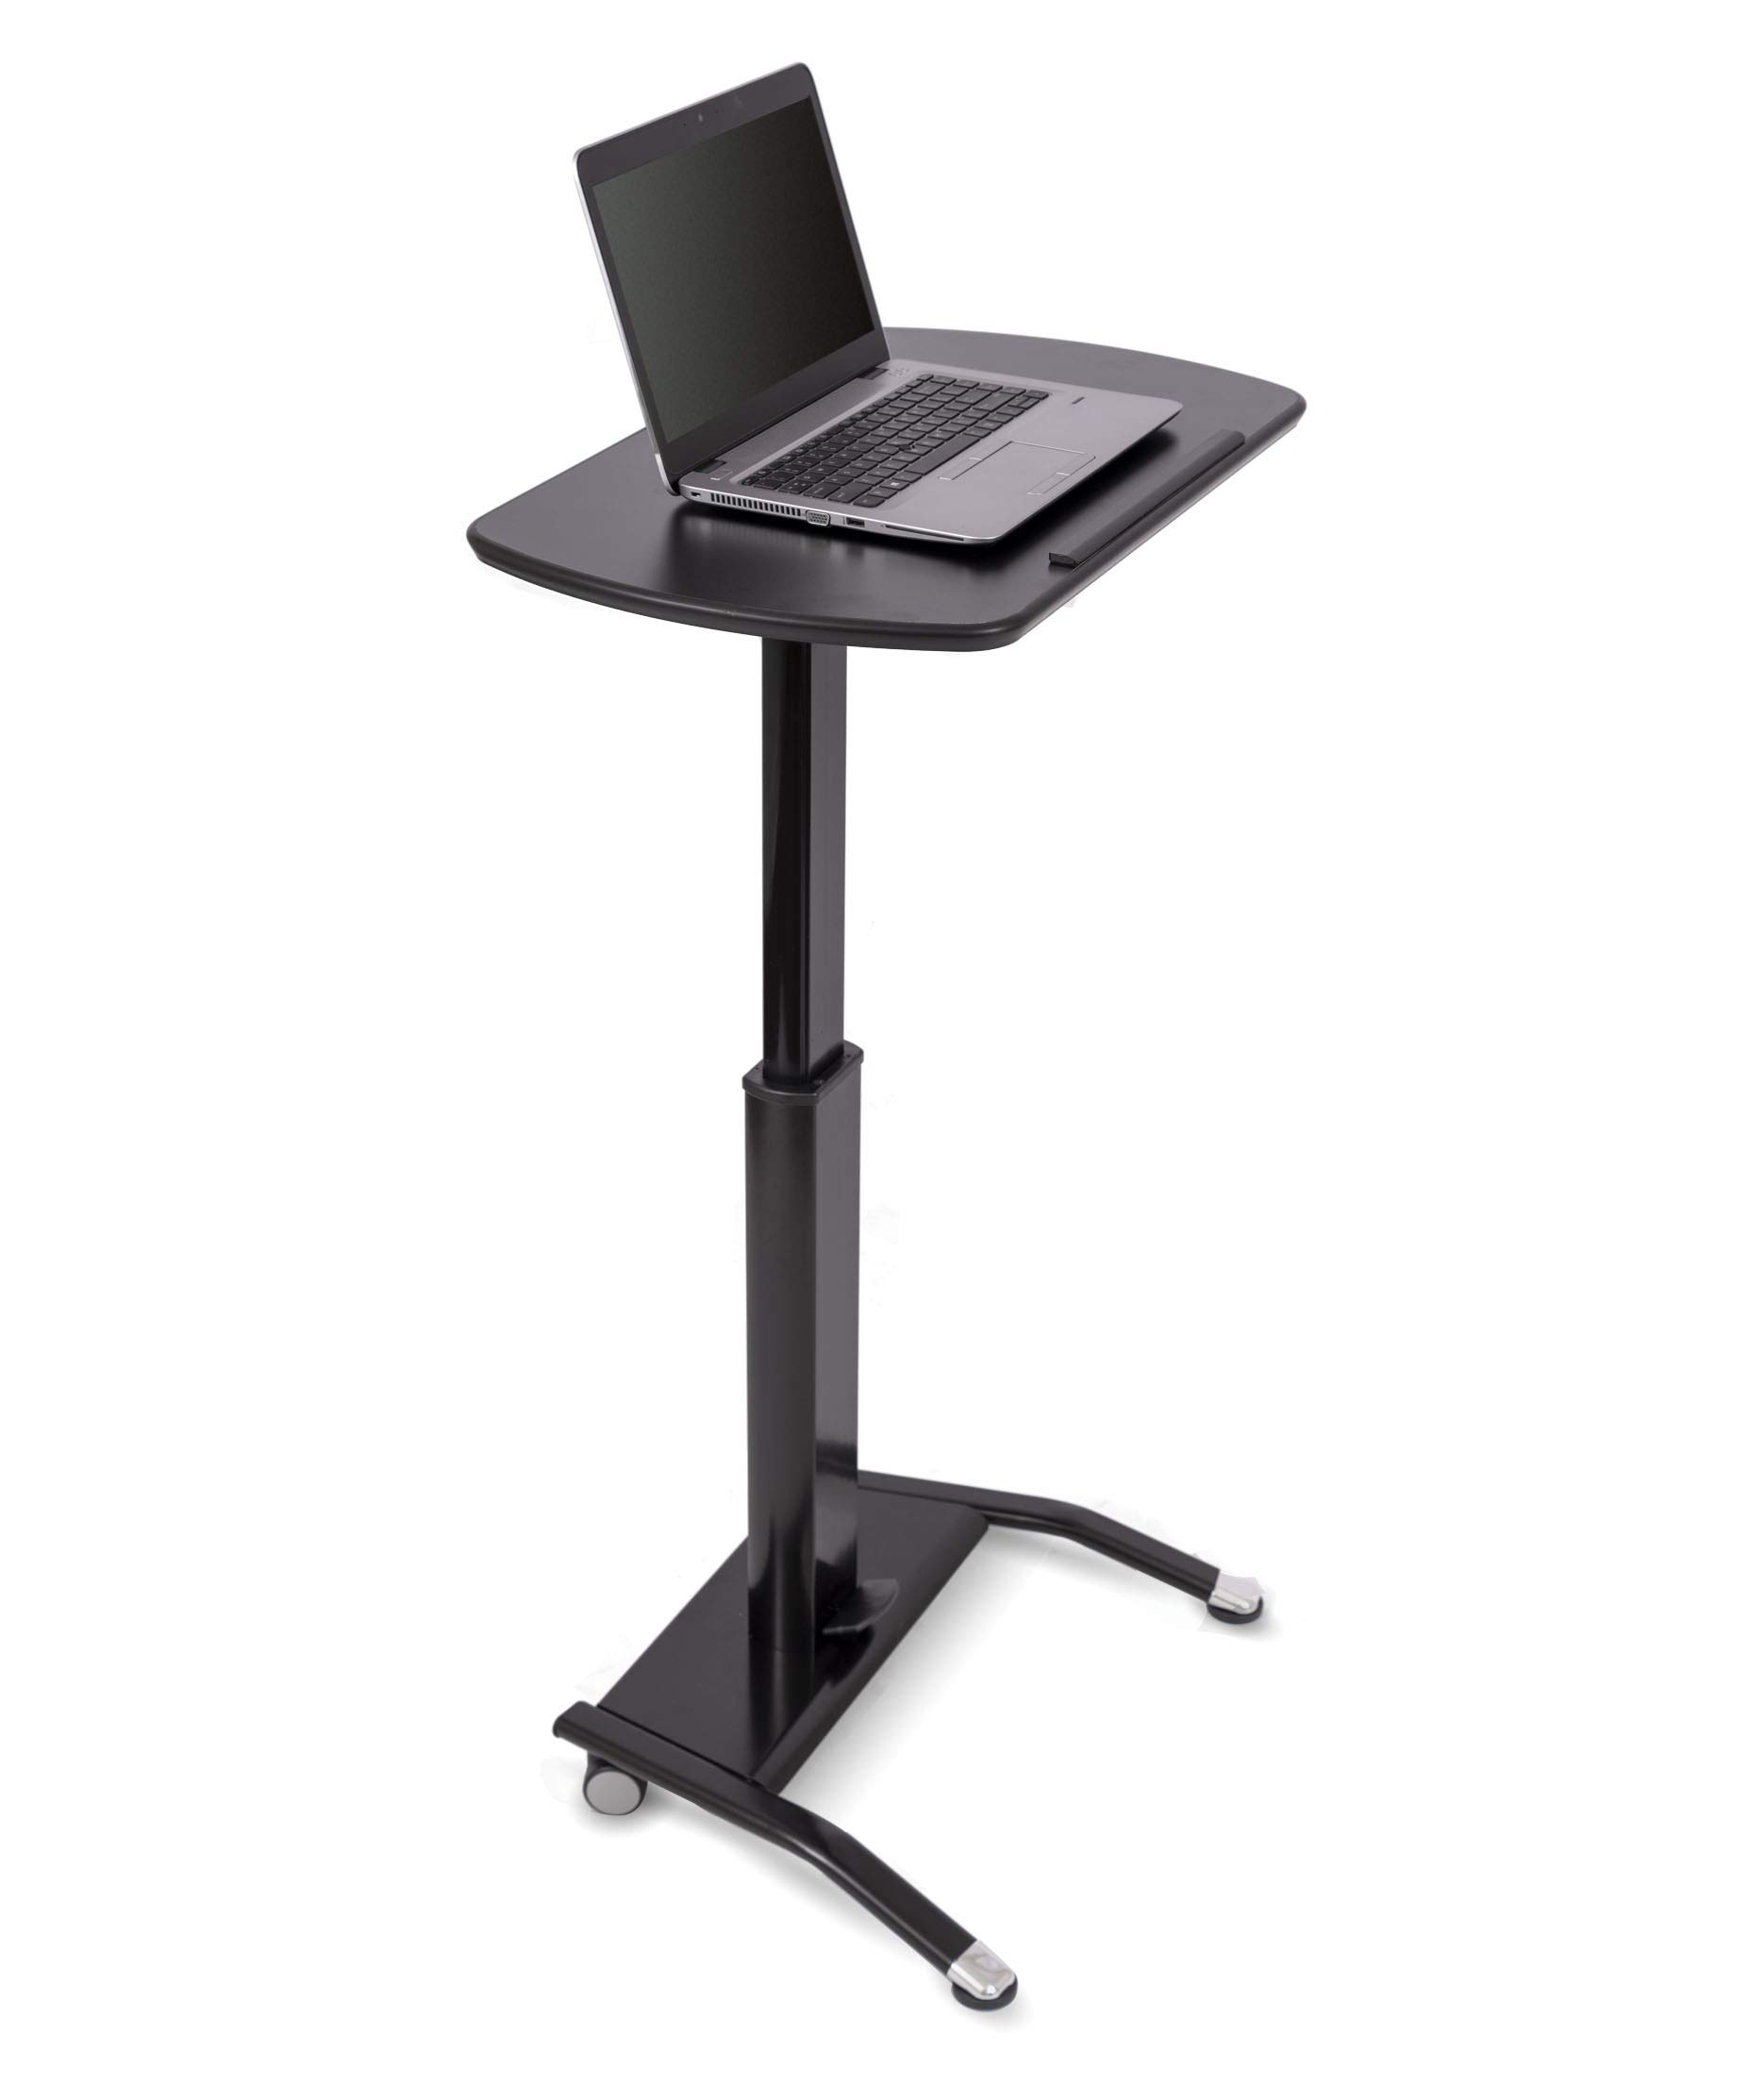 Pneumatic Adjustable-Height Lectern (Black) by Stand Up Desk Store (Image #1)